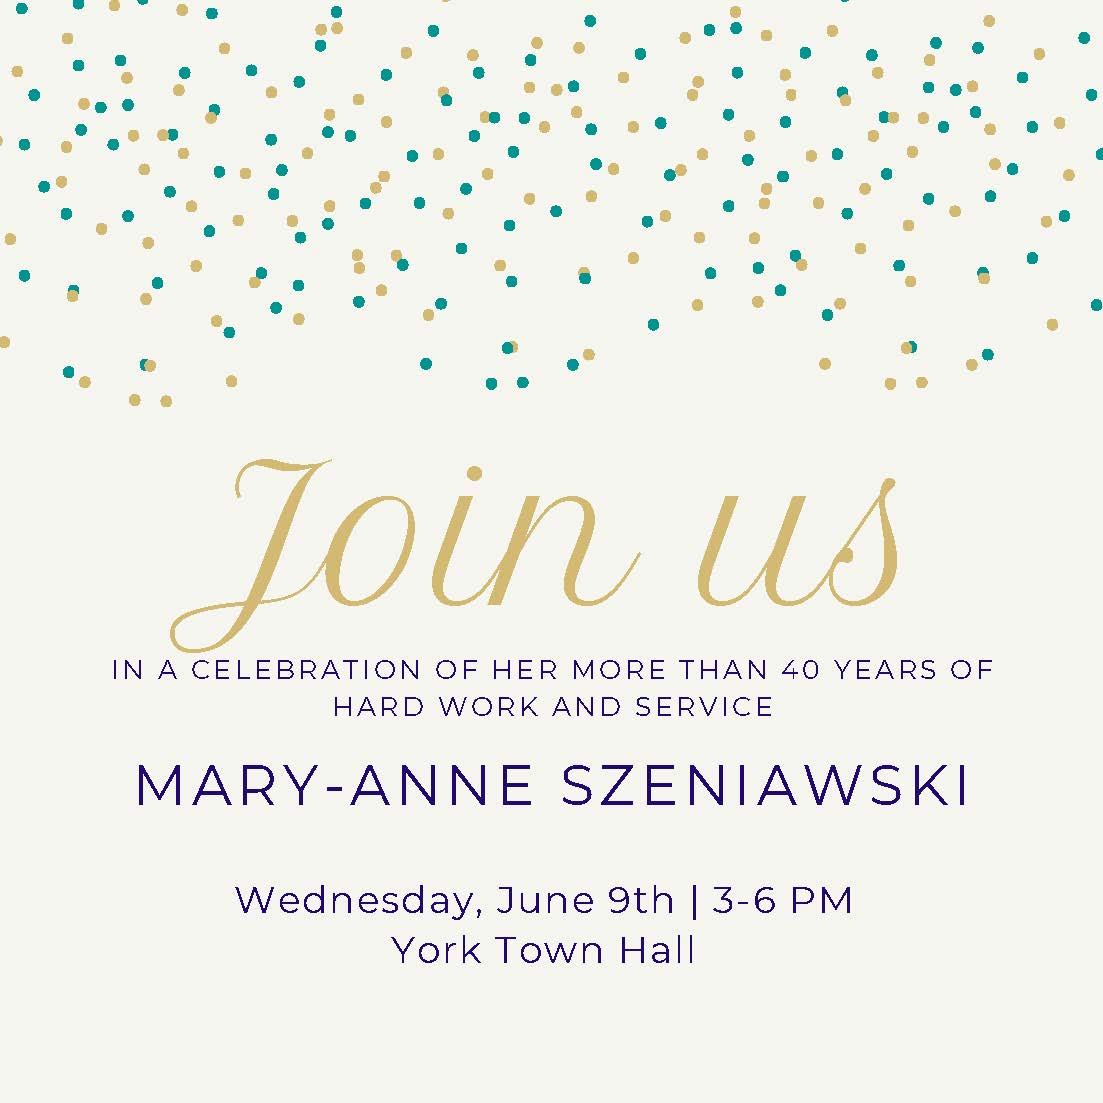 Mary-Anne Retirement Party Invitation